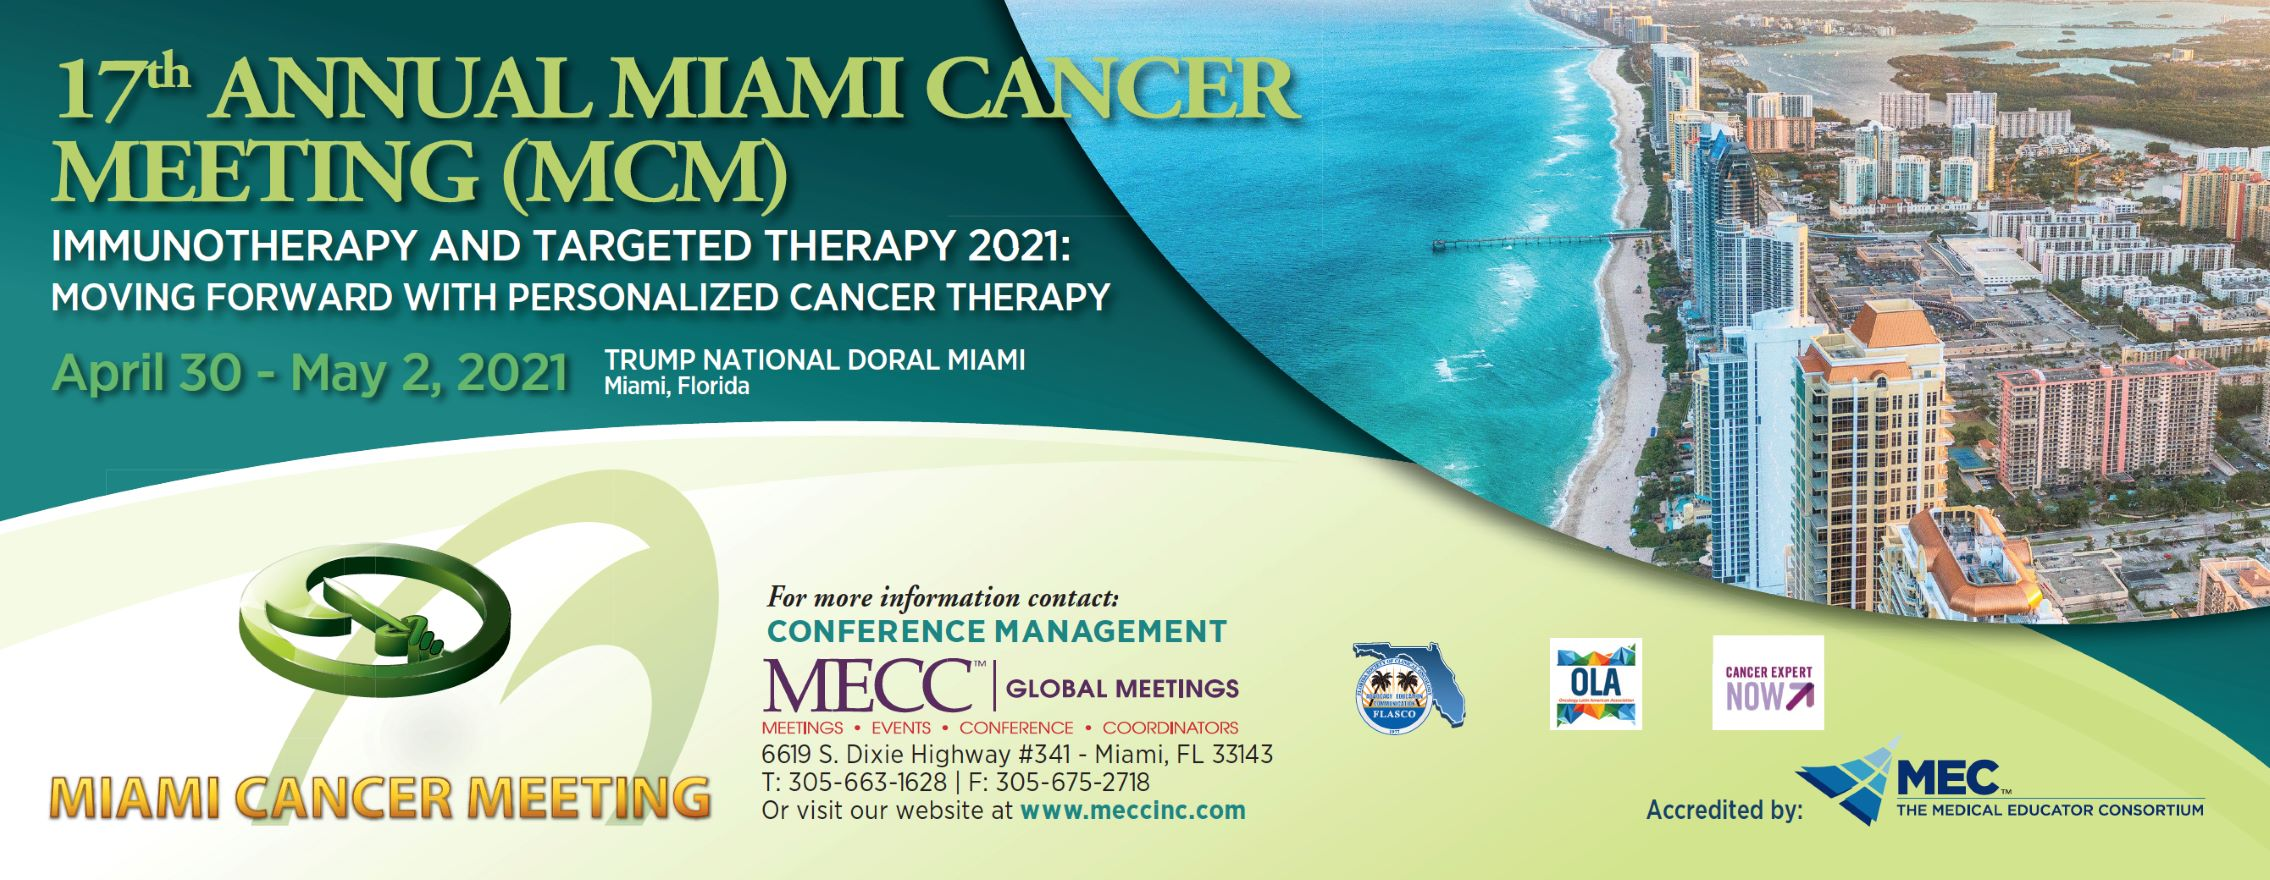 17th Annual Miami Cancer Meeting (MCM)